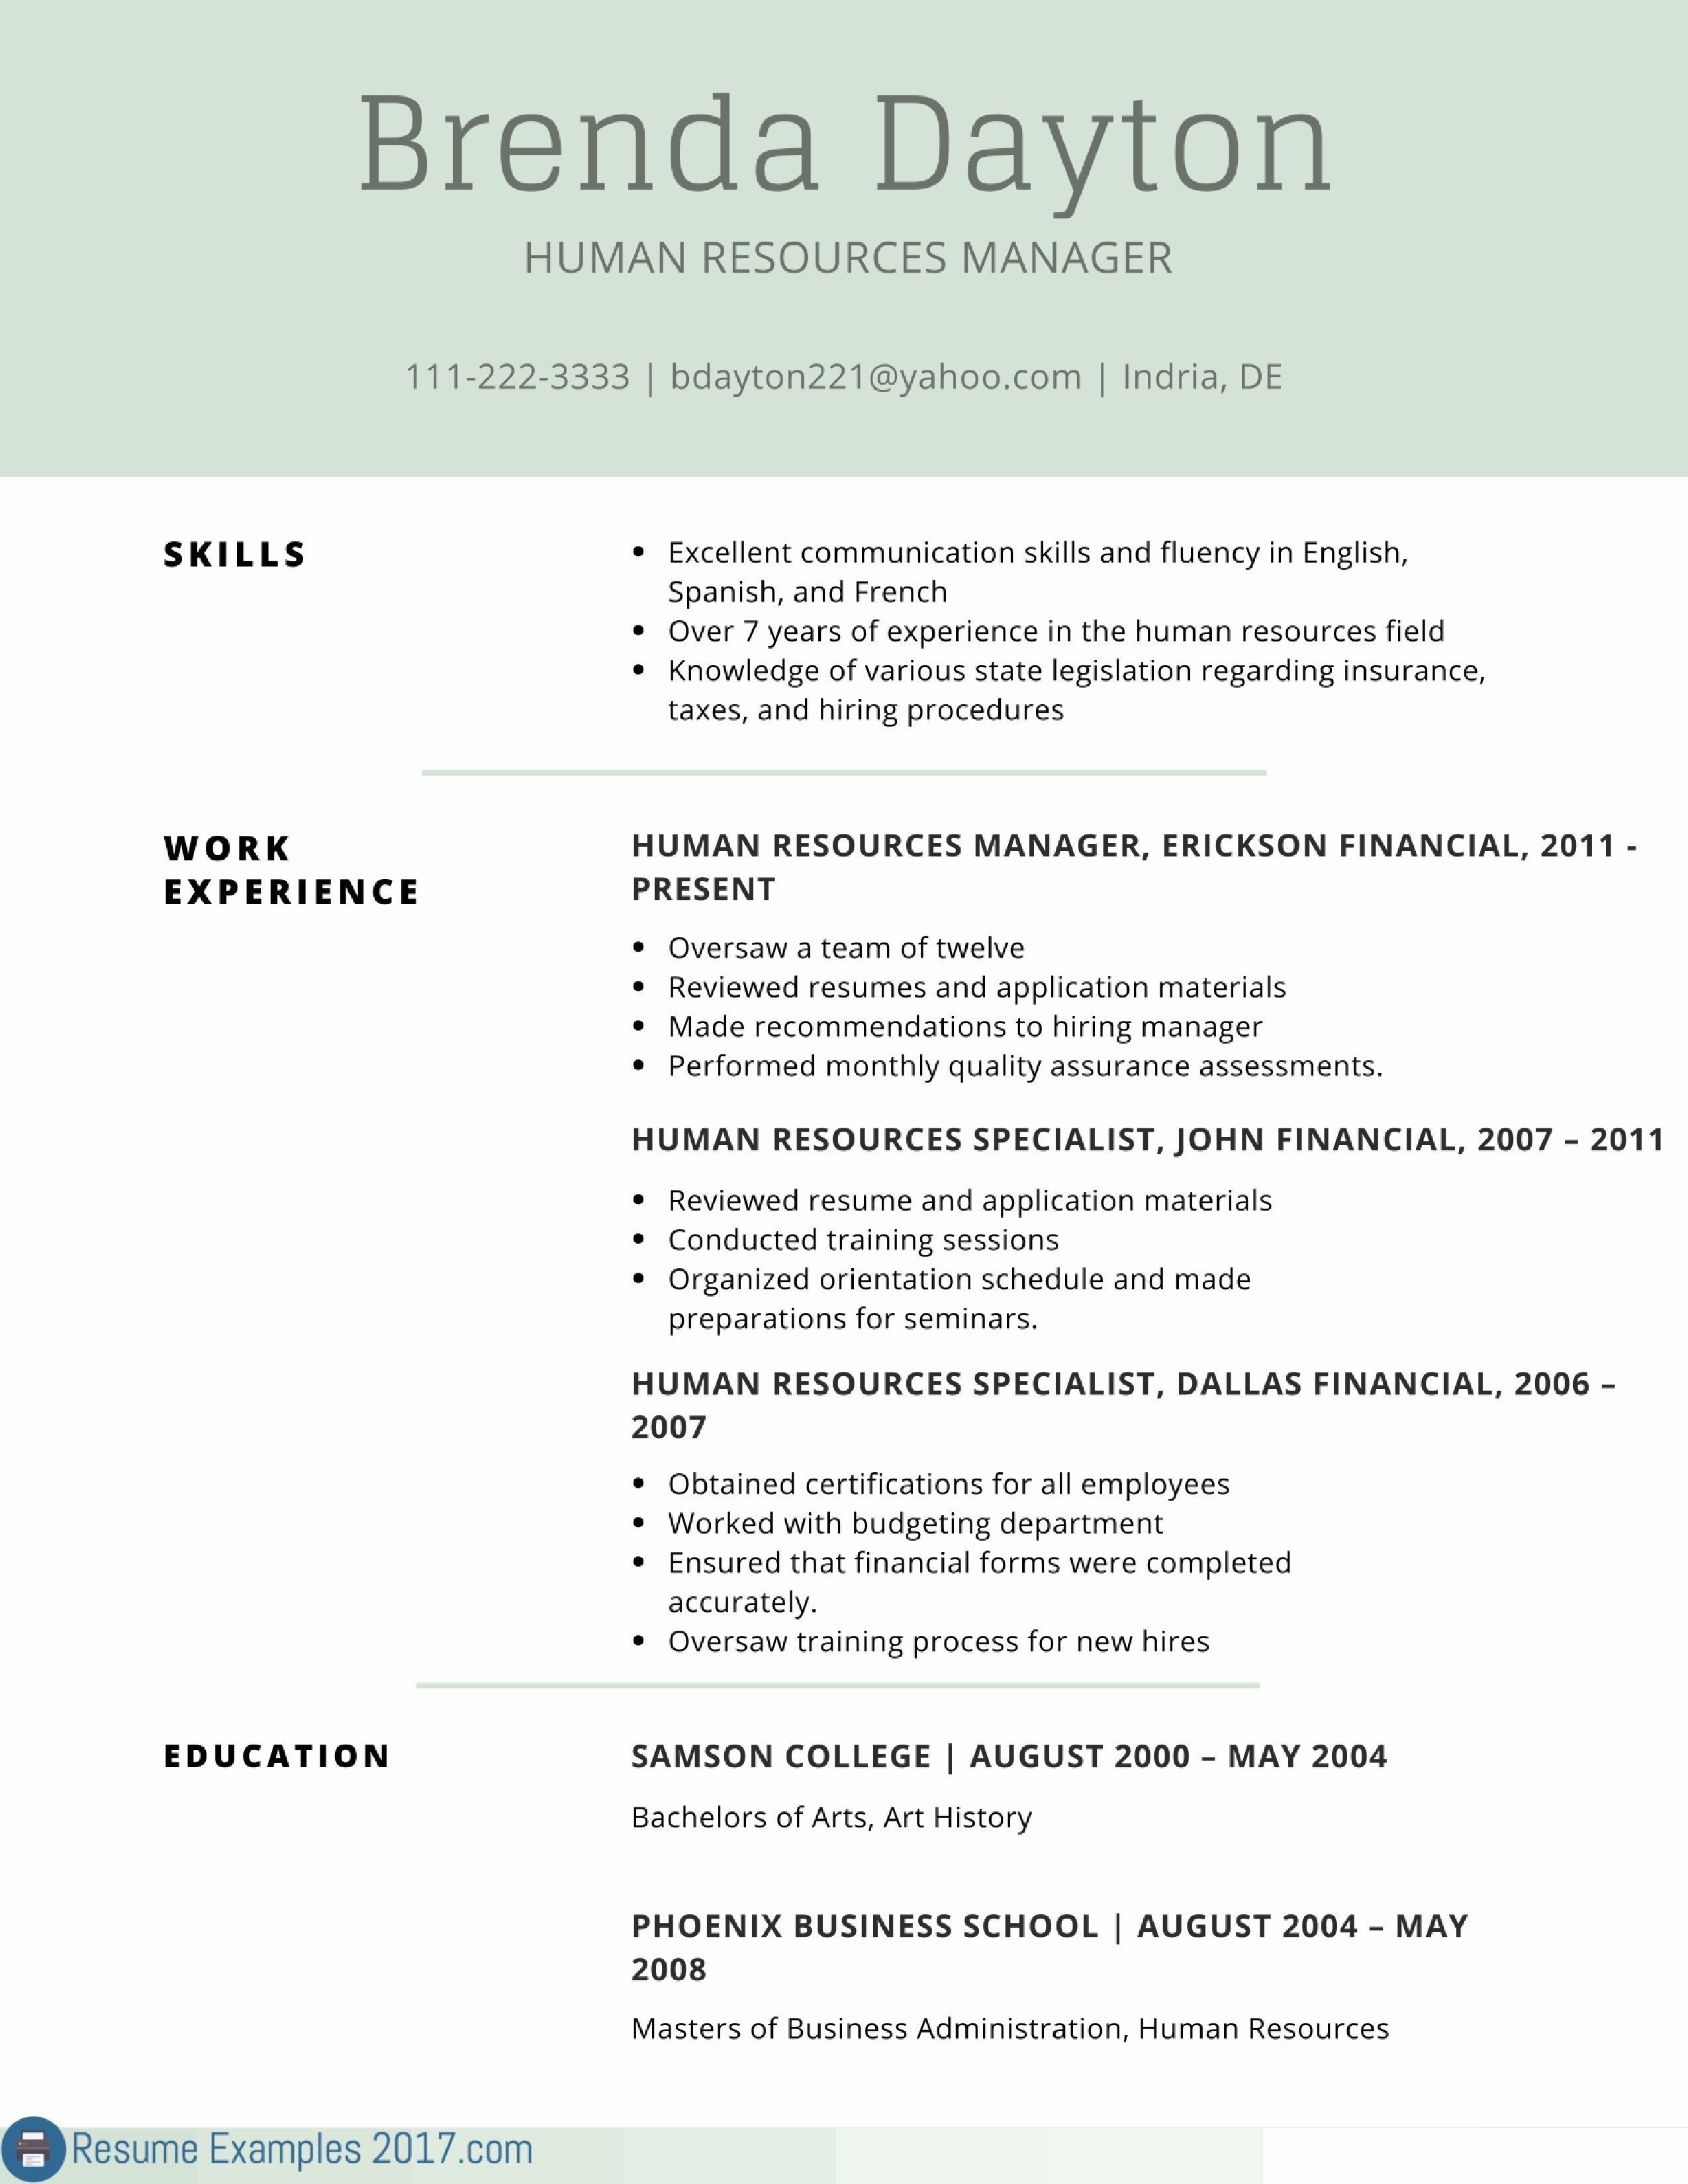 hardware skills in resume Collection-puter Hardware Skills for Resume Beautiful Resume Samples Skills Luxury Fresh New Resume Sample Best Resume 2-s